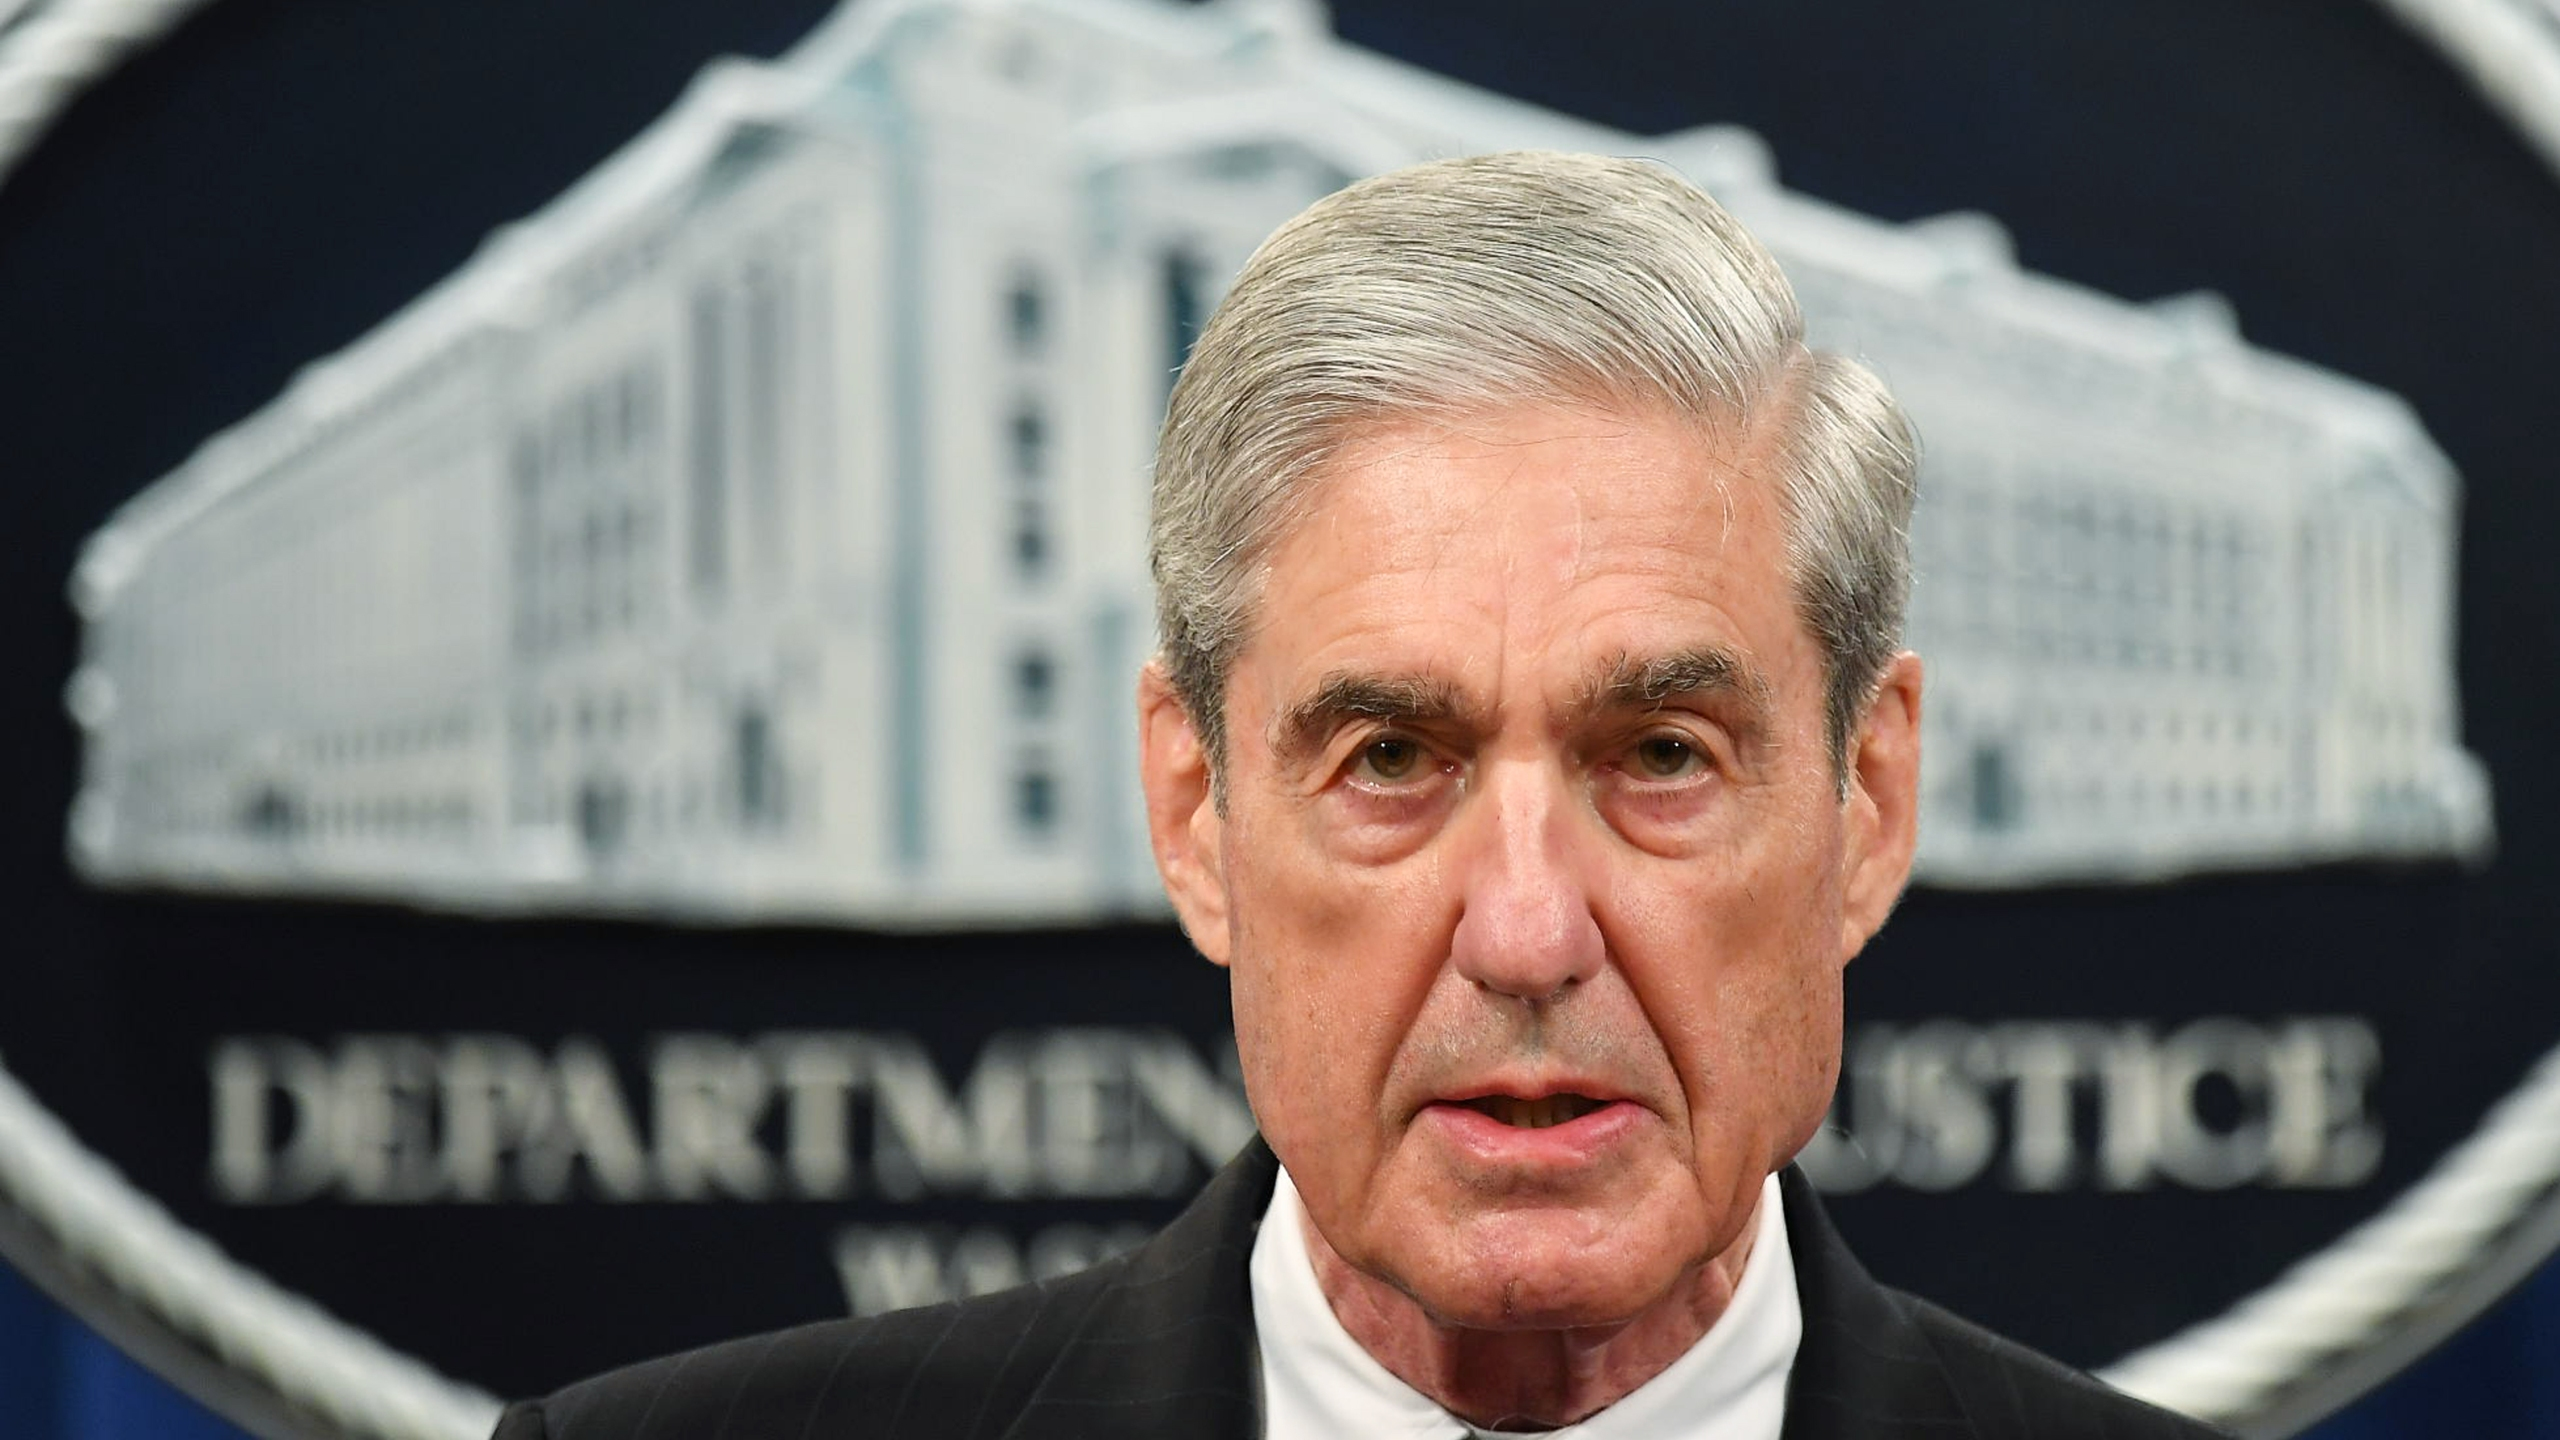 Special Counsel Robert Mueller speaks on the investigation into Russian interference in the presidential election at the U.S. Justice Department on May 29, 2019. (MANDEL NGAN/AFP via Getty Images)